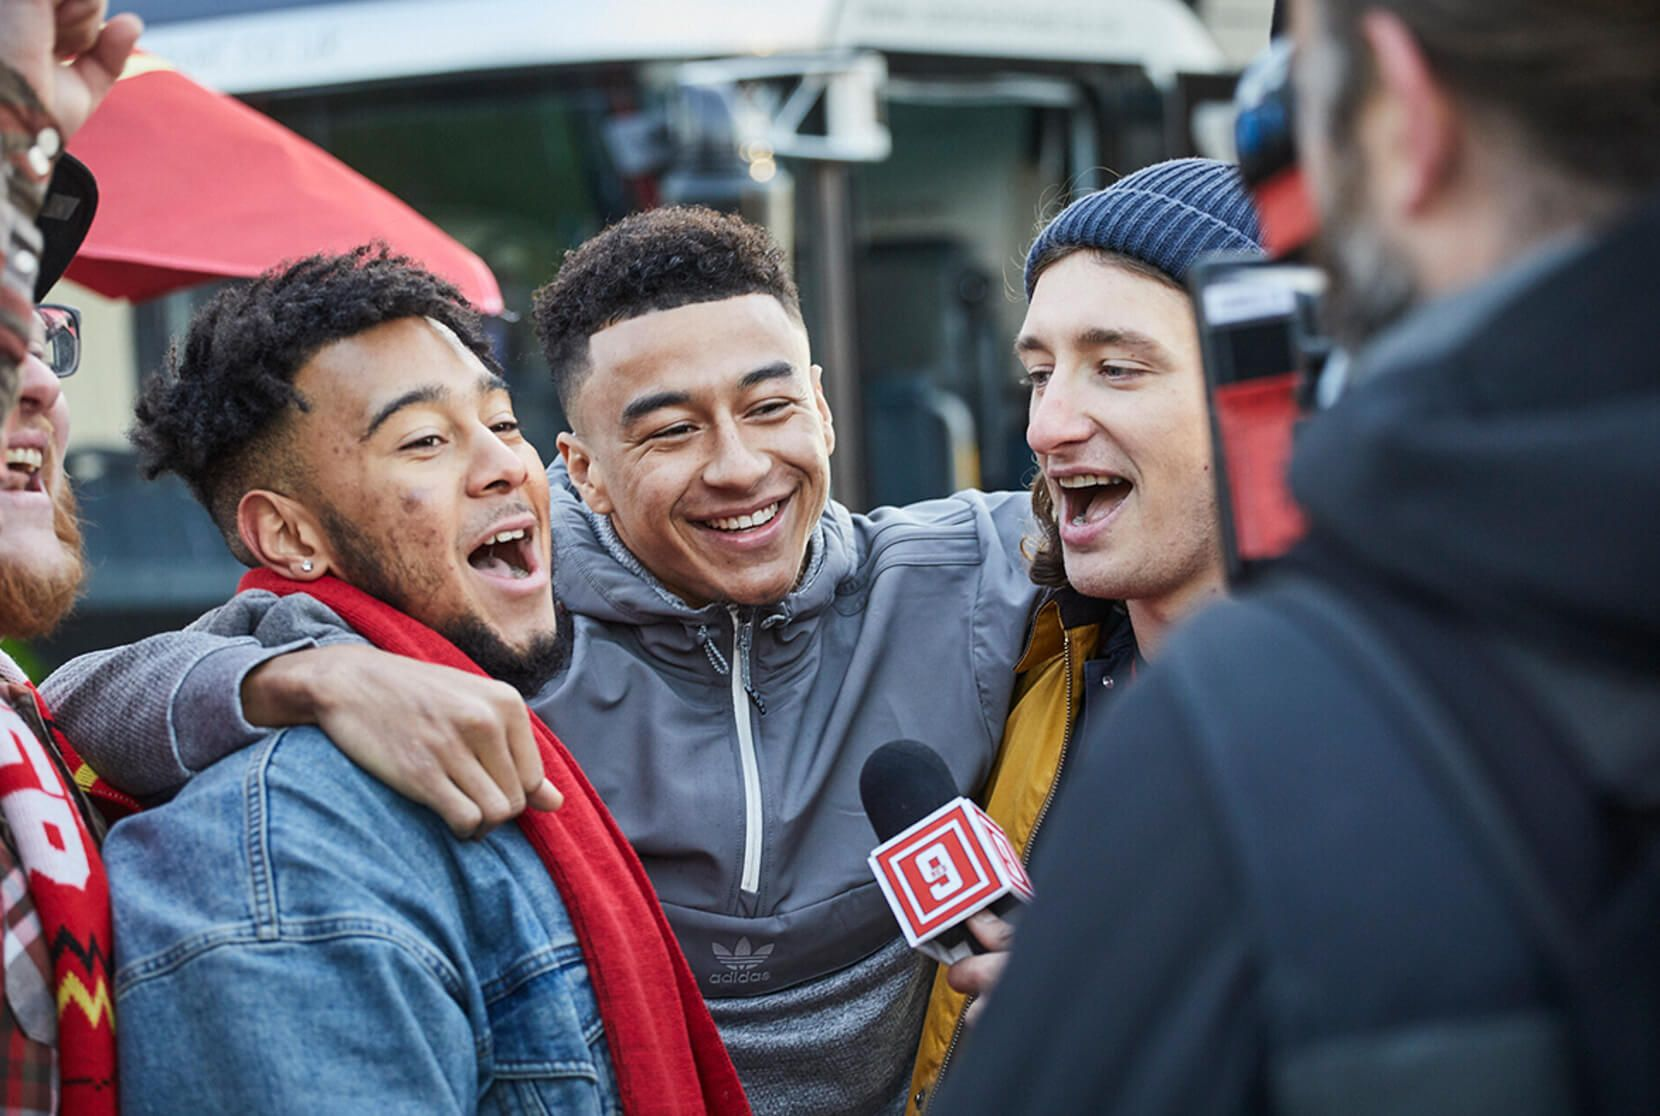 Jesse Lingard poses with two smiling fans